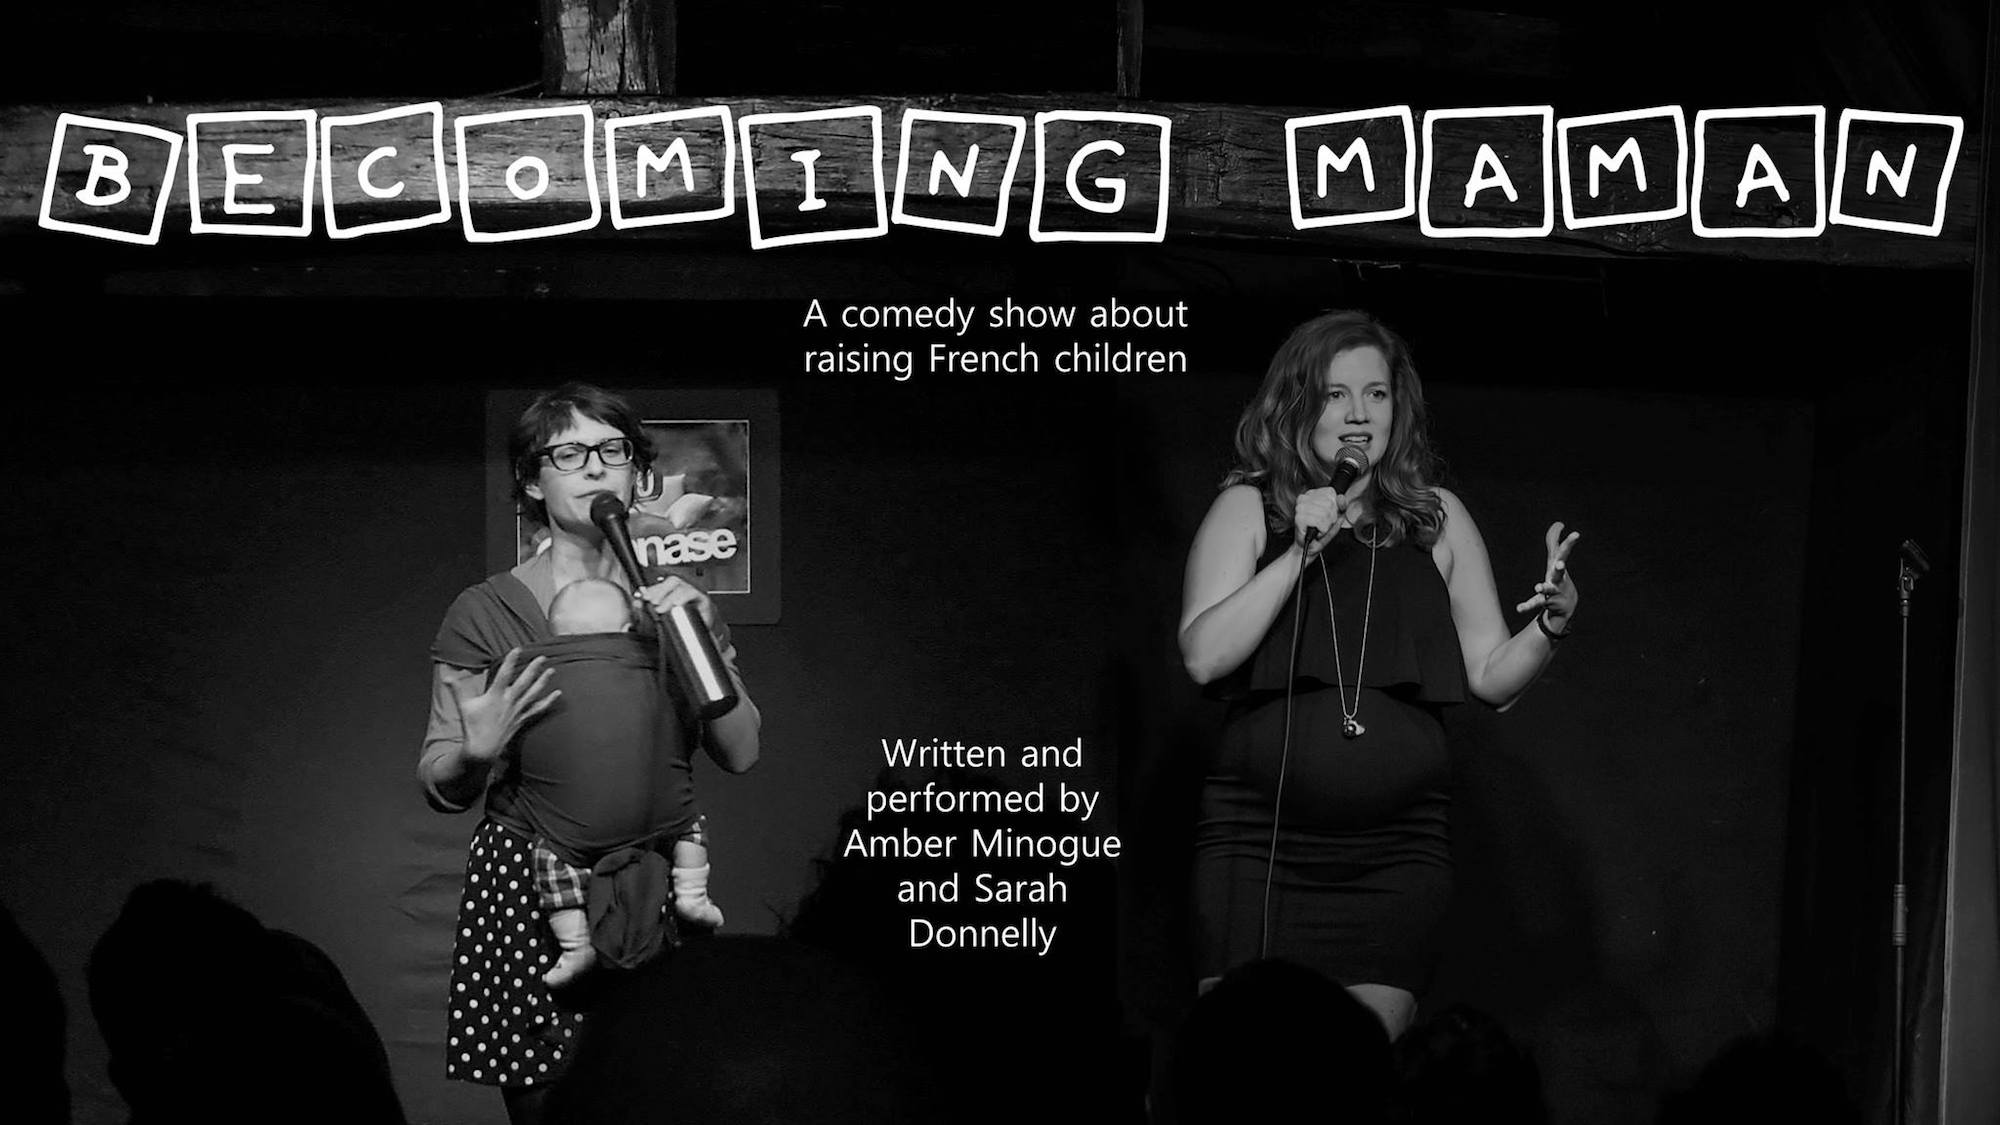 A hilarious stand-up comedy podcast Becoming Maman about raising kids in Paris is one of HiP Paris blog's favorites.